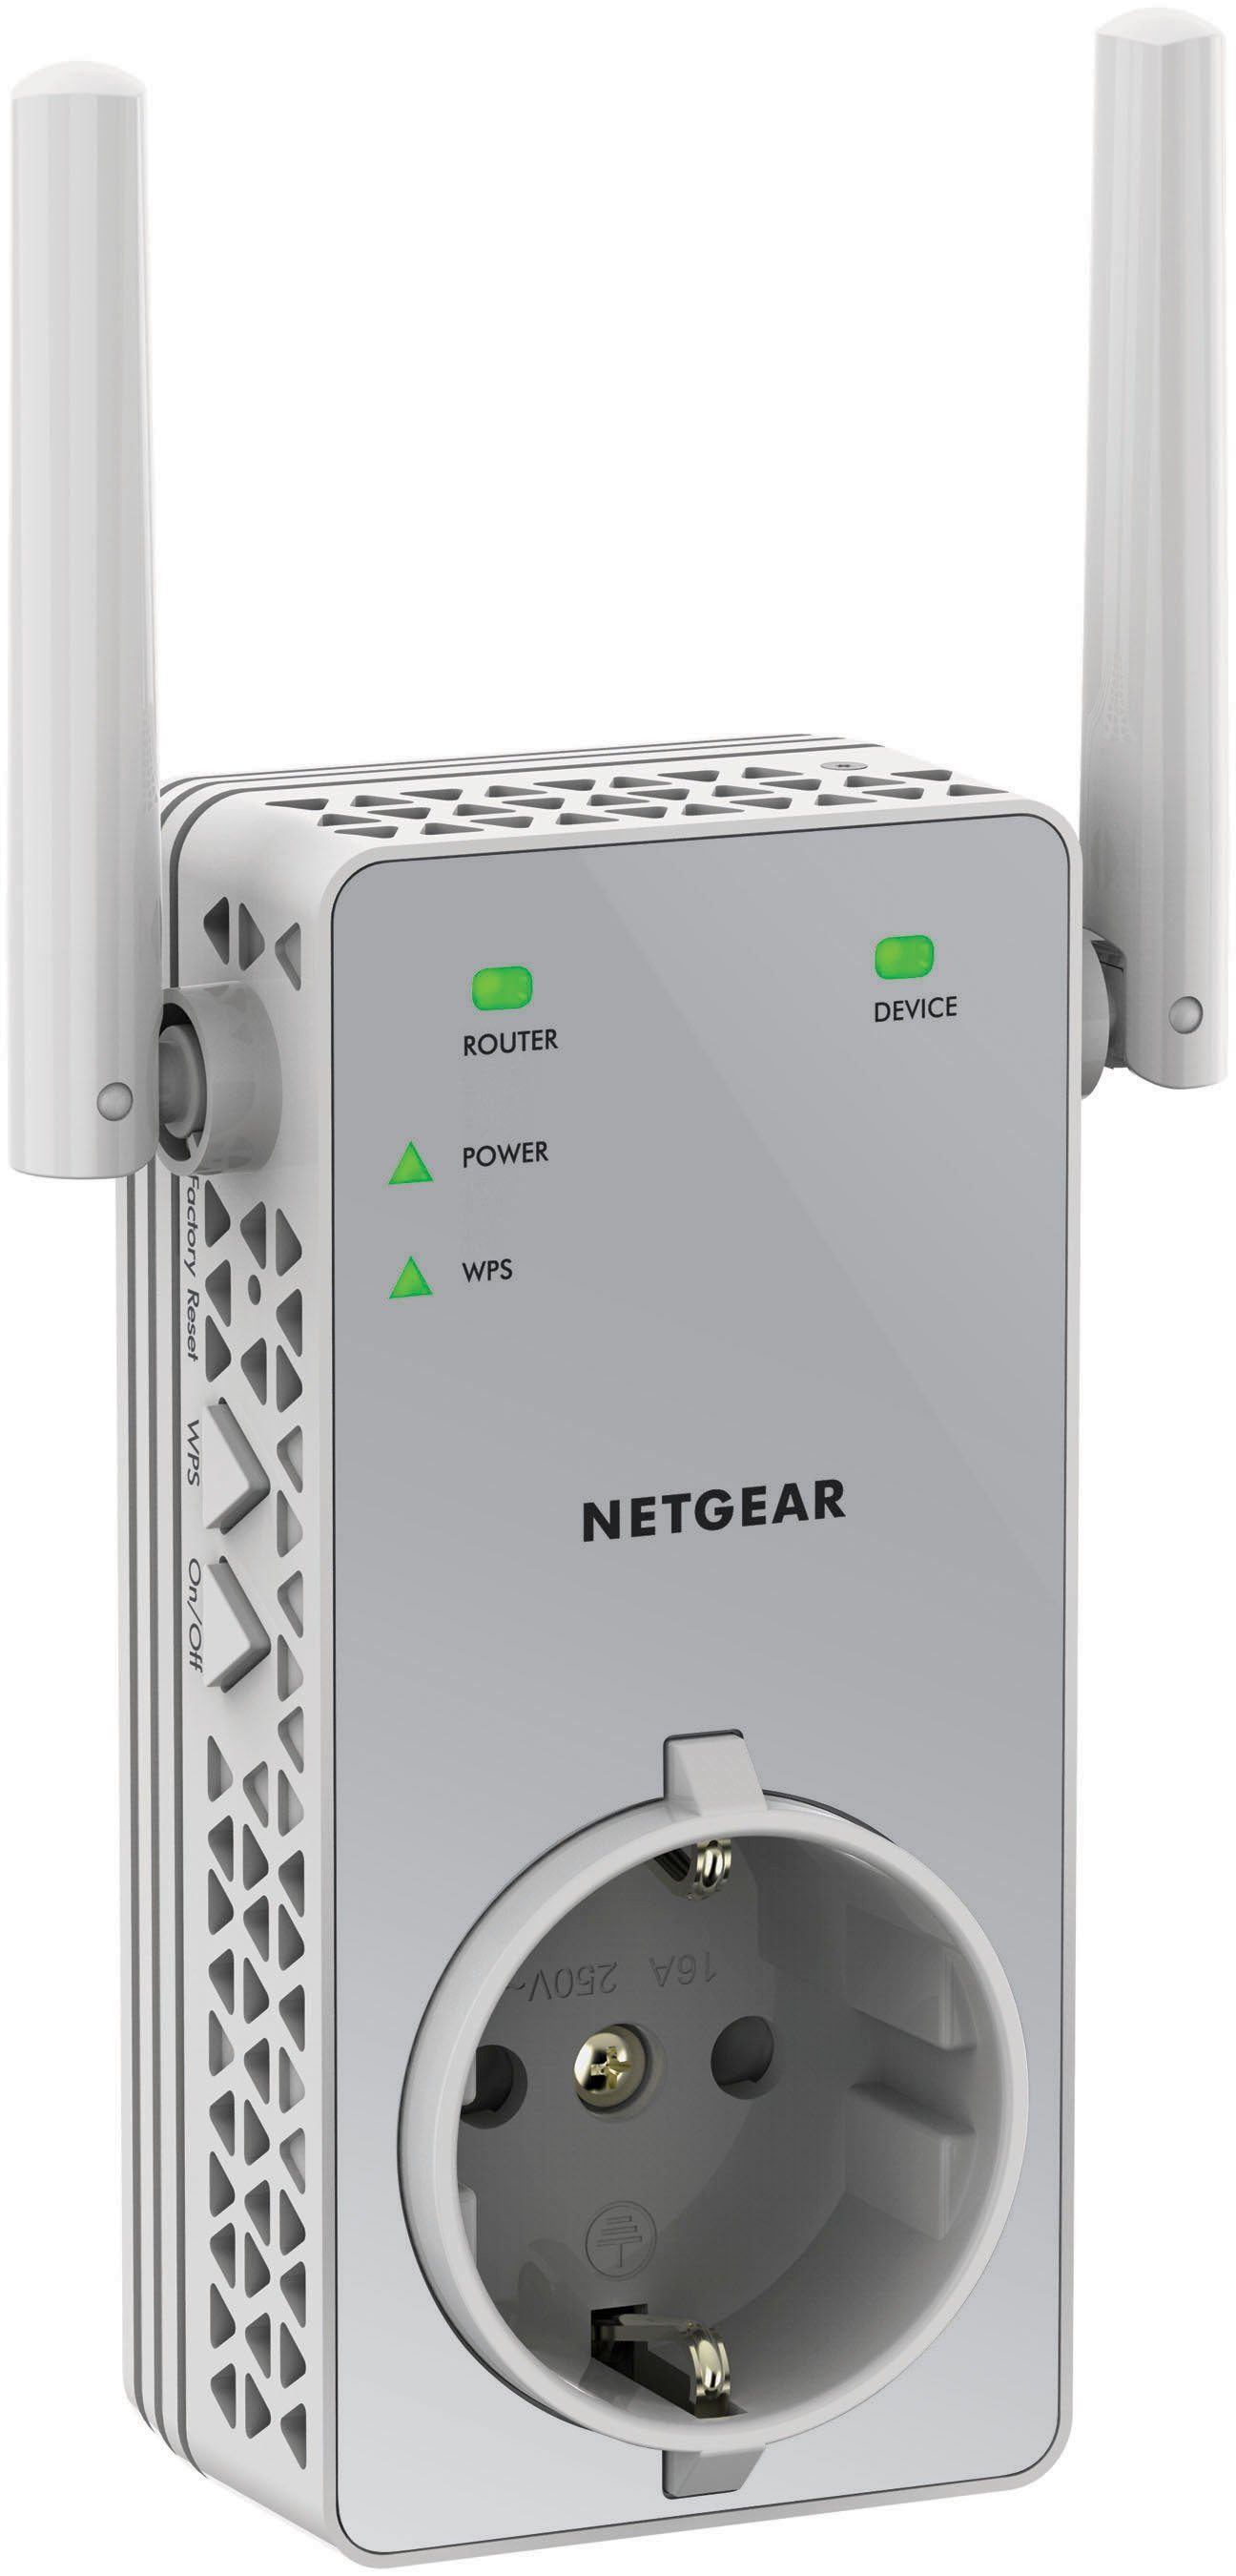 Netgear Access Point Hardware »AC750 WLAN RANGE EXTENDER«